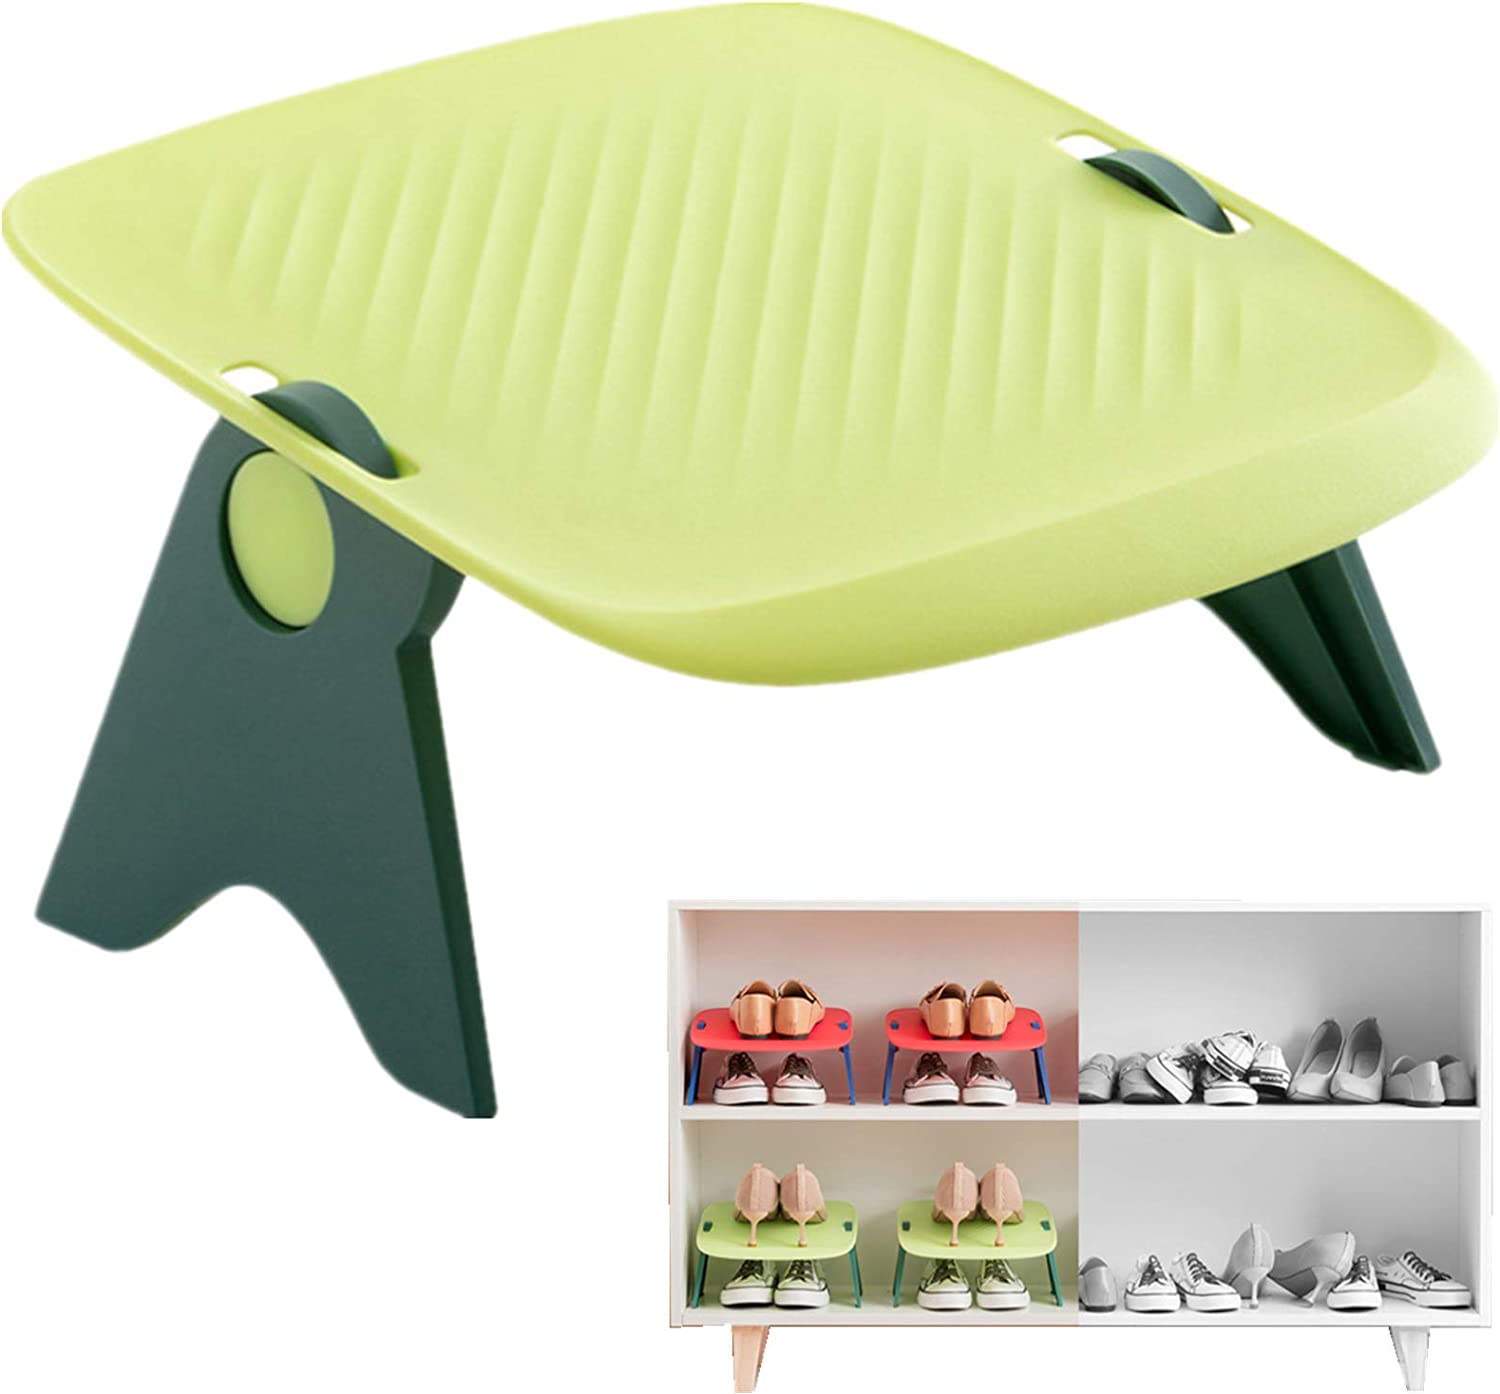 YIMUMU Shoe Slots Organizer Stackable Shoe Rack Holder for Closet 2 Pcs Adjustable Double Birds Deck Shoe Stacker 50% Space Saver Storage Rack Organizer for Home Storage, Green